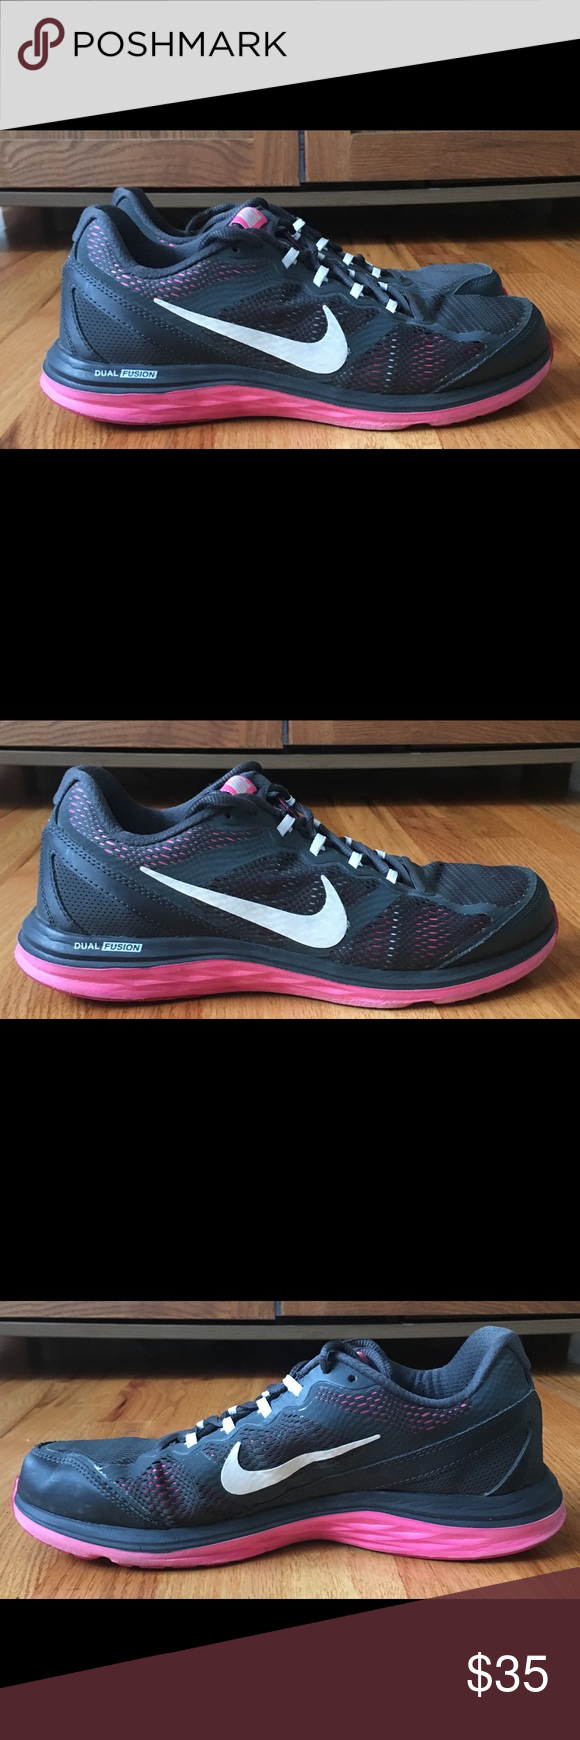 Women's NIKE DUAL FUSION RUN 3 Anthracite Trainers